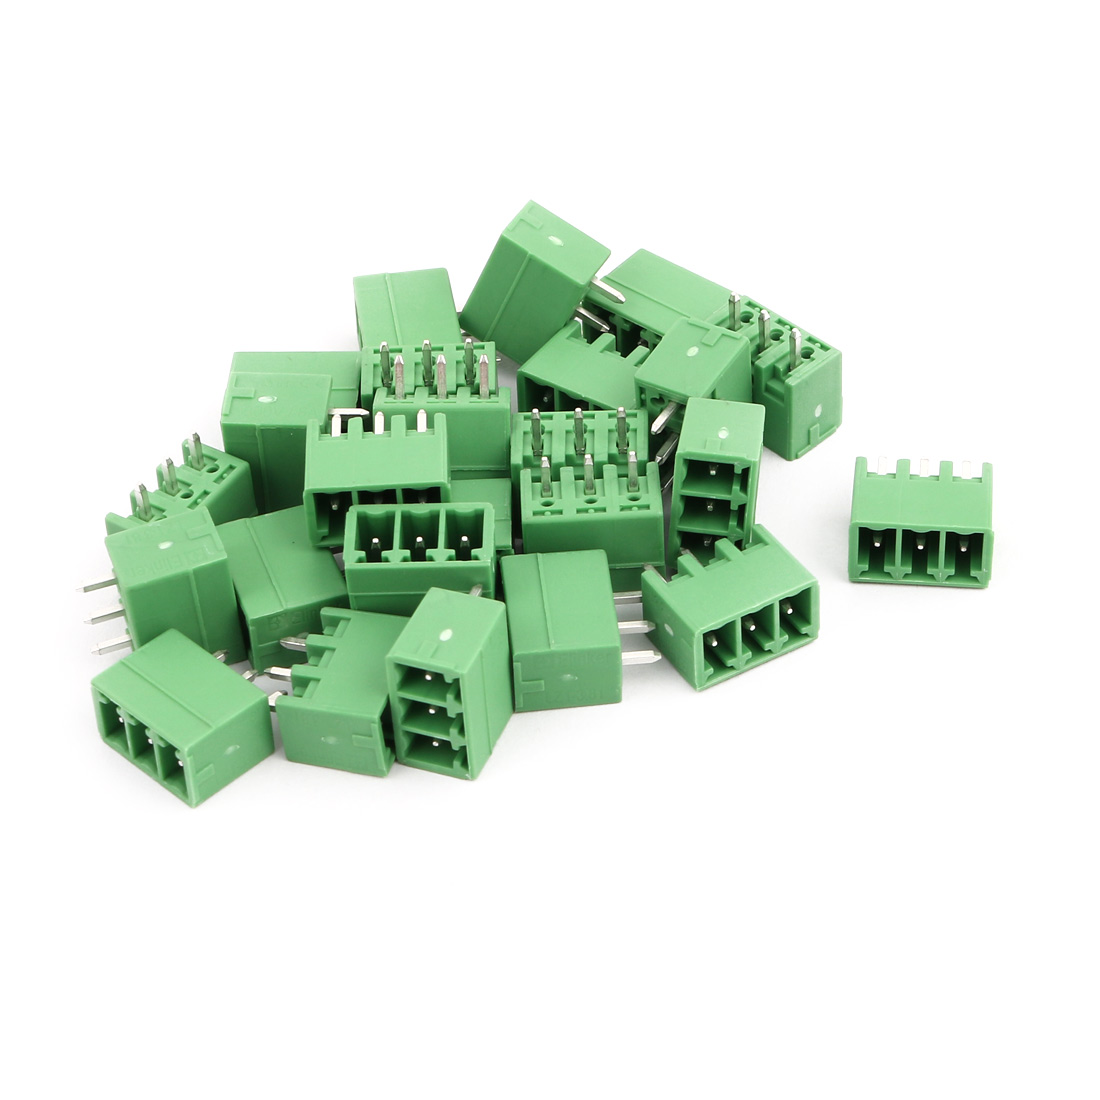 25Pcs AC 300V 8A 3.81mm Pitch 3P Terminal Block Wire Connection for PCB Mounting